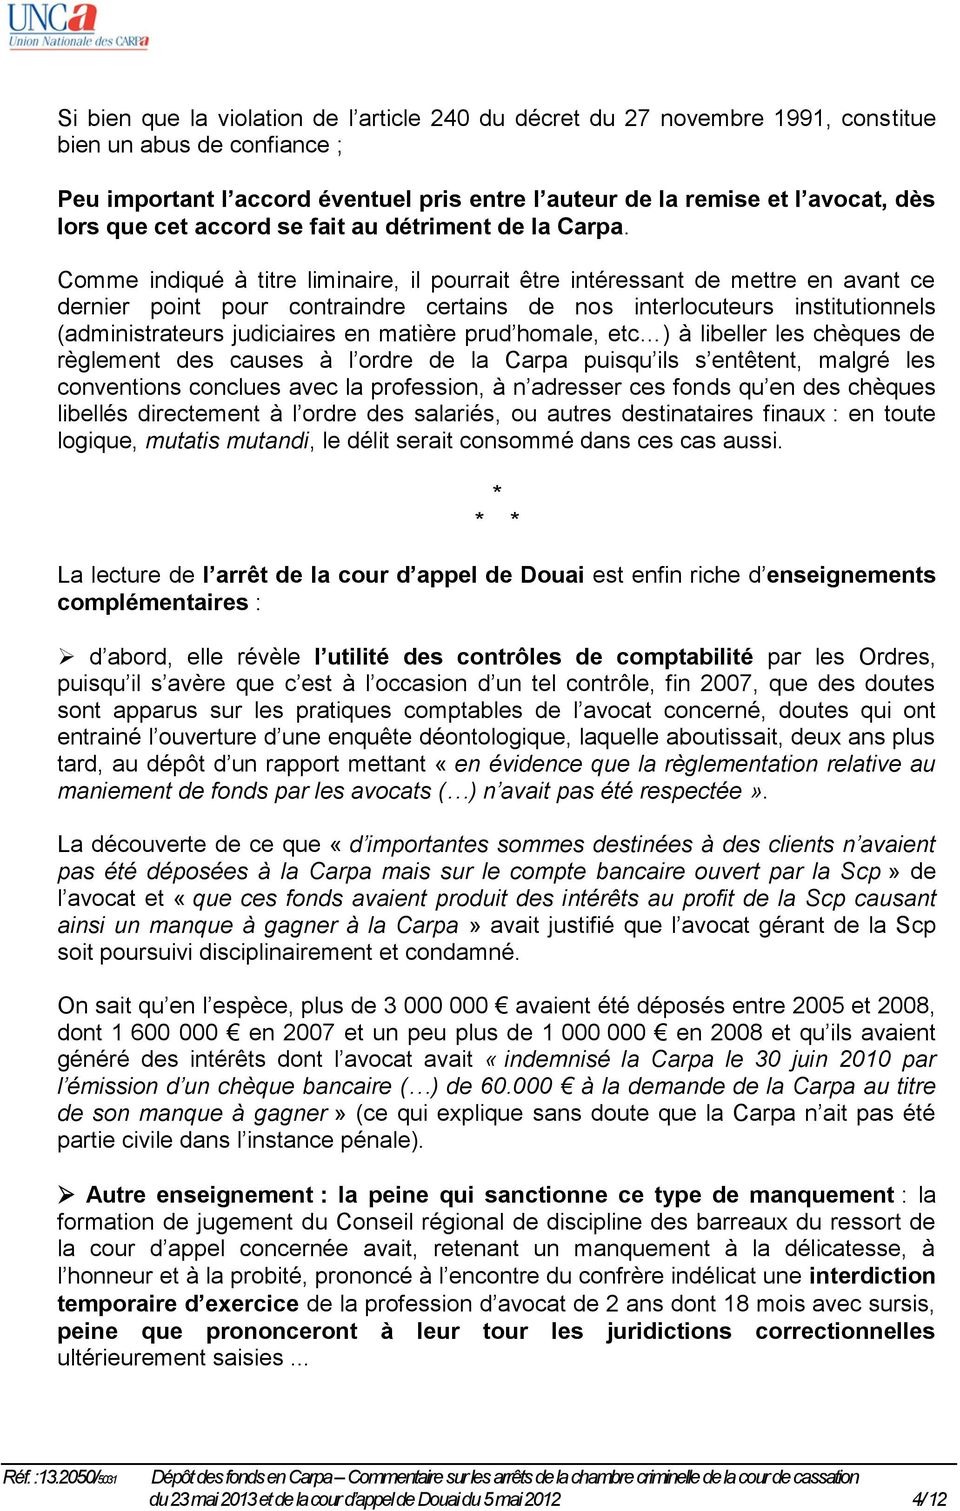 Comme indiqué à titre liminaire, il pourrait être intéressant de mettre en avant ce dernier point pour contraindre certains de nos interlocuteurs institutionnels (administrateurs judiciaires en